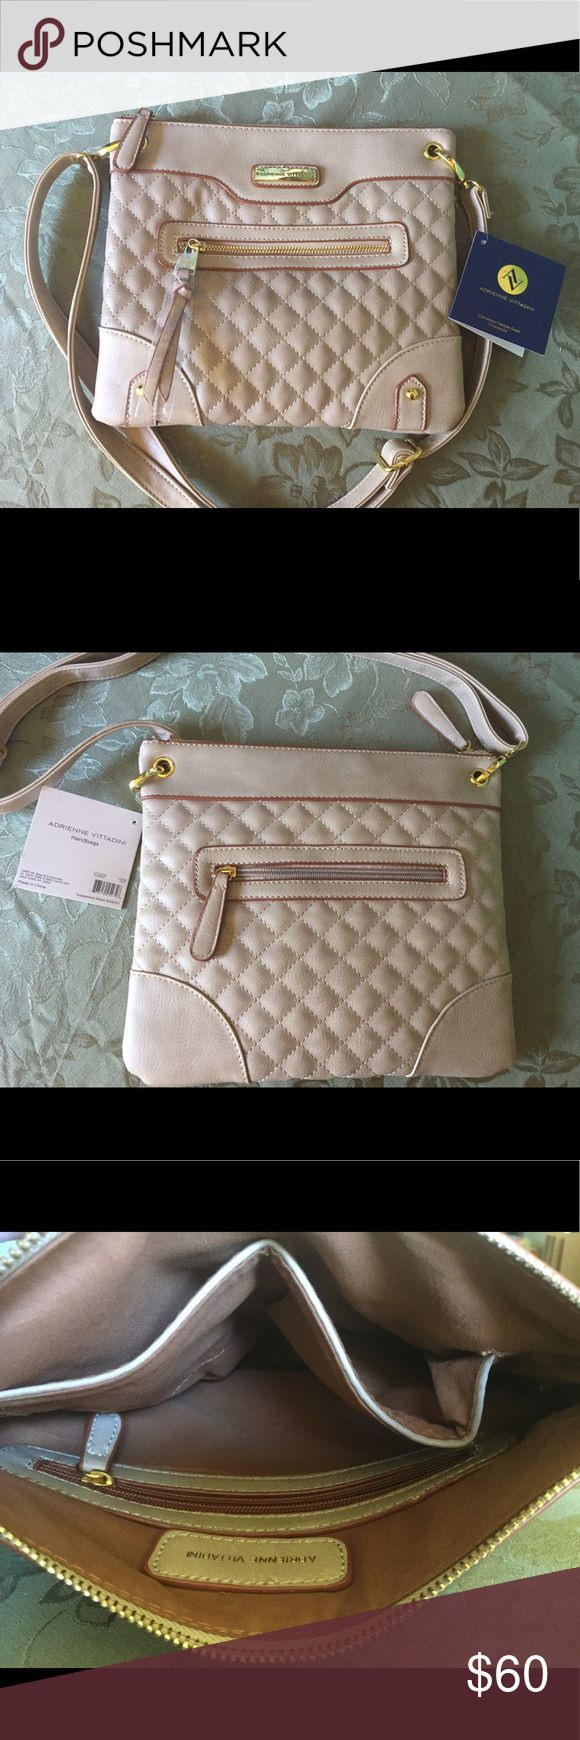 Adrienne Vittadini Pebble Grain Crossbody Adrienne Vittadini Pebble Grain Crossbody, brand new-never used. Light beige color, brown rims, with gold hardware. Shoulder strap adjustable for all sizes. Clean and stylish look. Only two pieces left!!' Adrienne Vittadini Bags Crossbody Bags